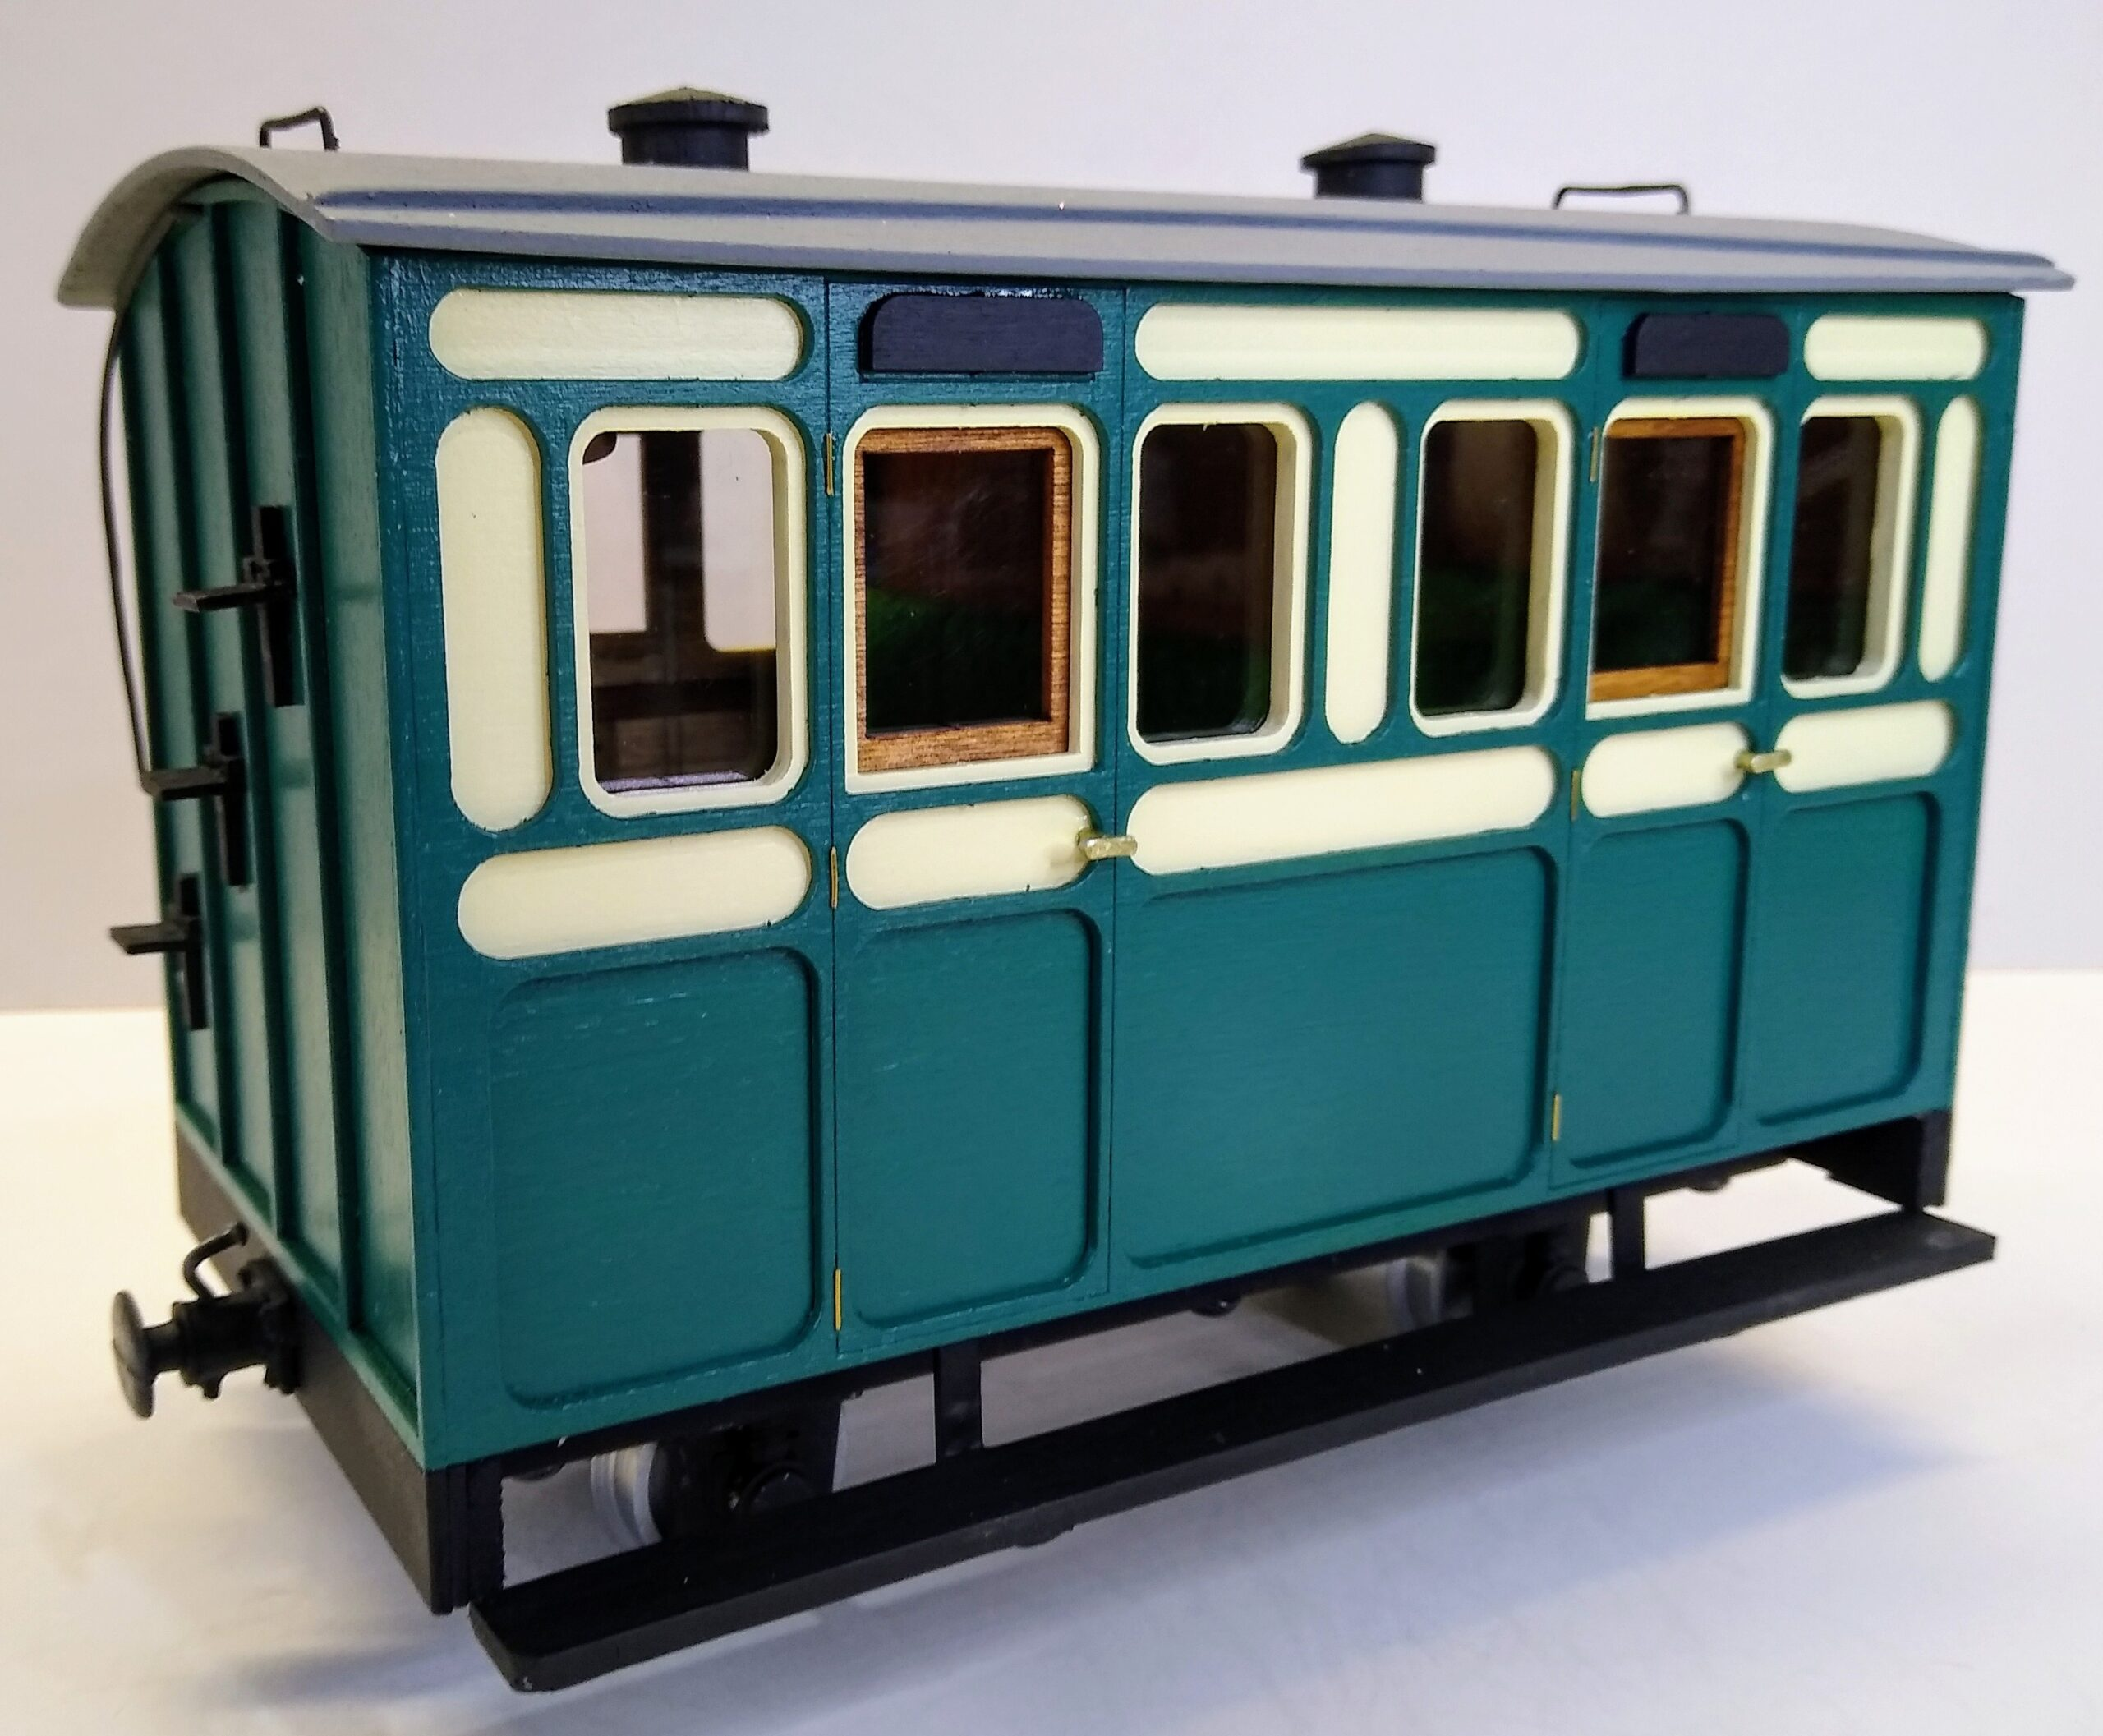 Rolling Stock Classic Freelance Green and Cream 2 compartment